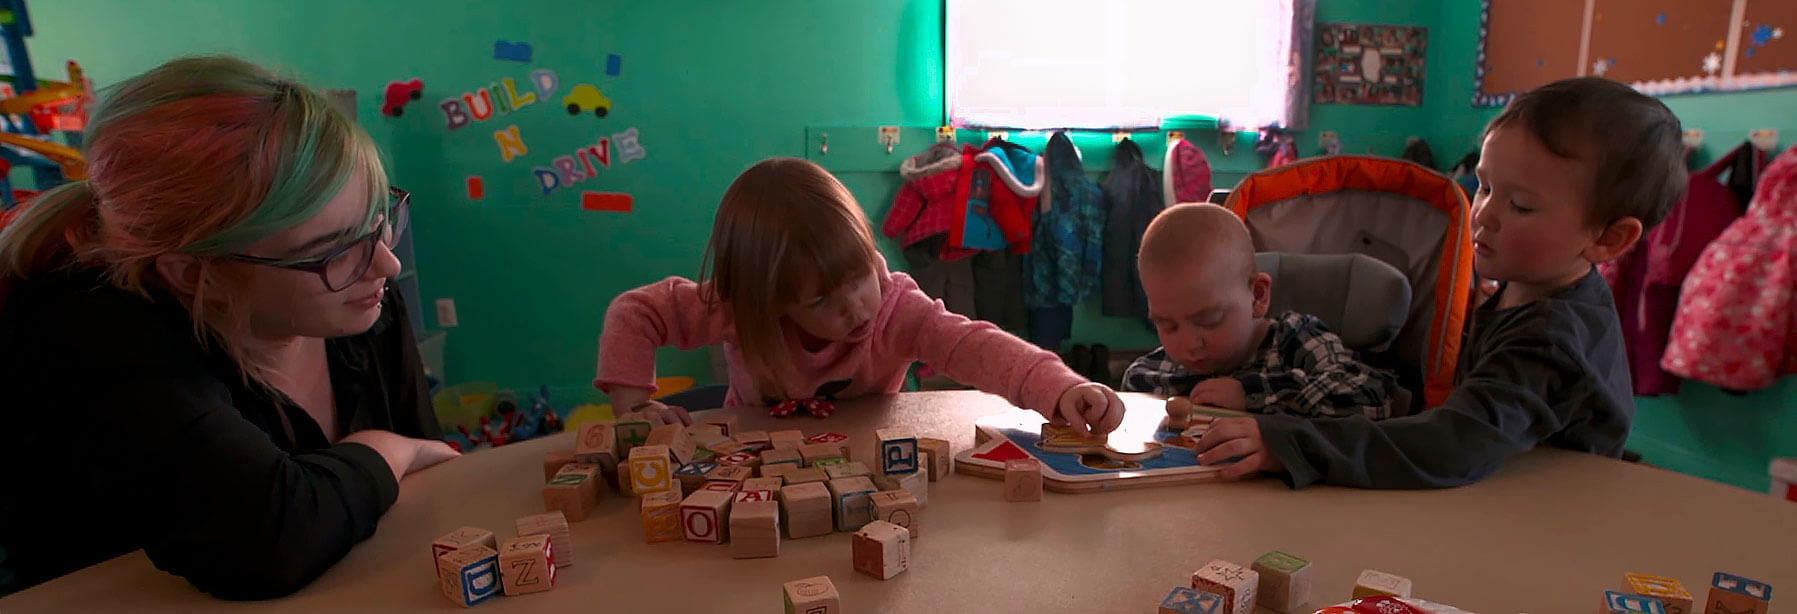 Children playing at a table with blocks while a care giver gives encouragement.